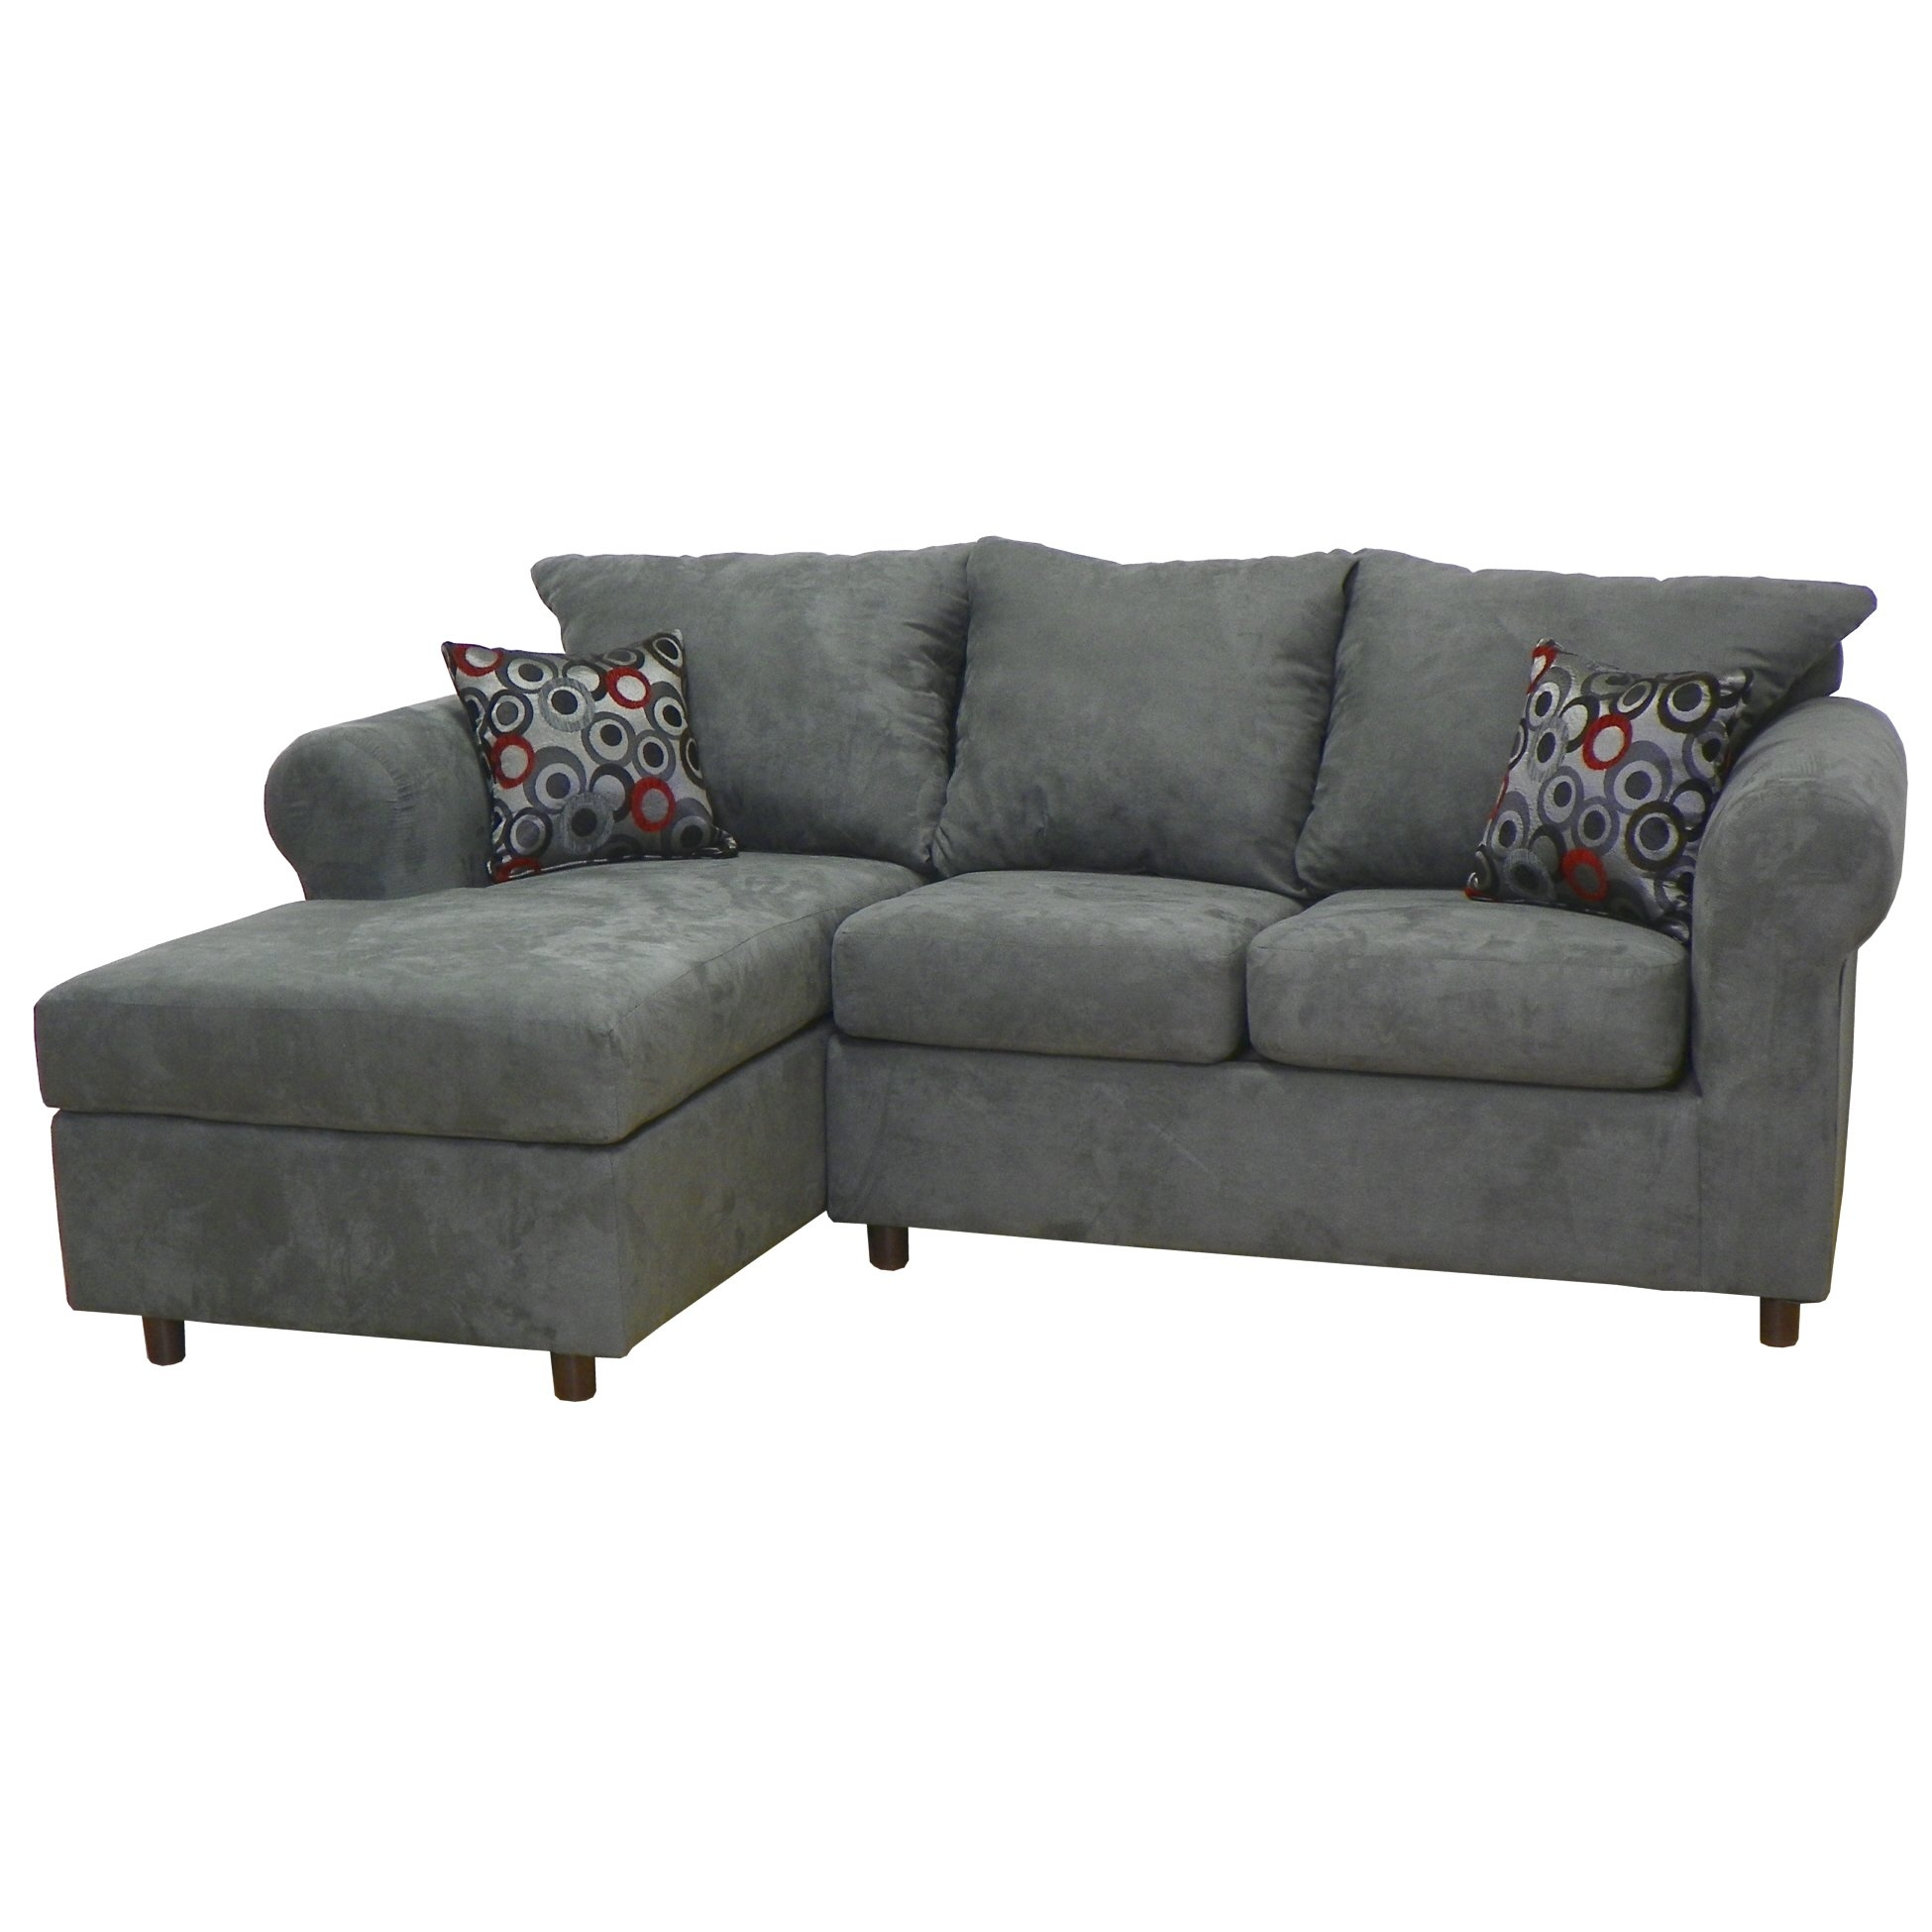 12 Best Collection of Small Sectional Sofa